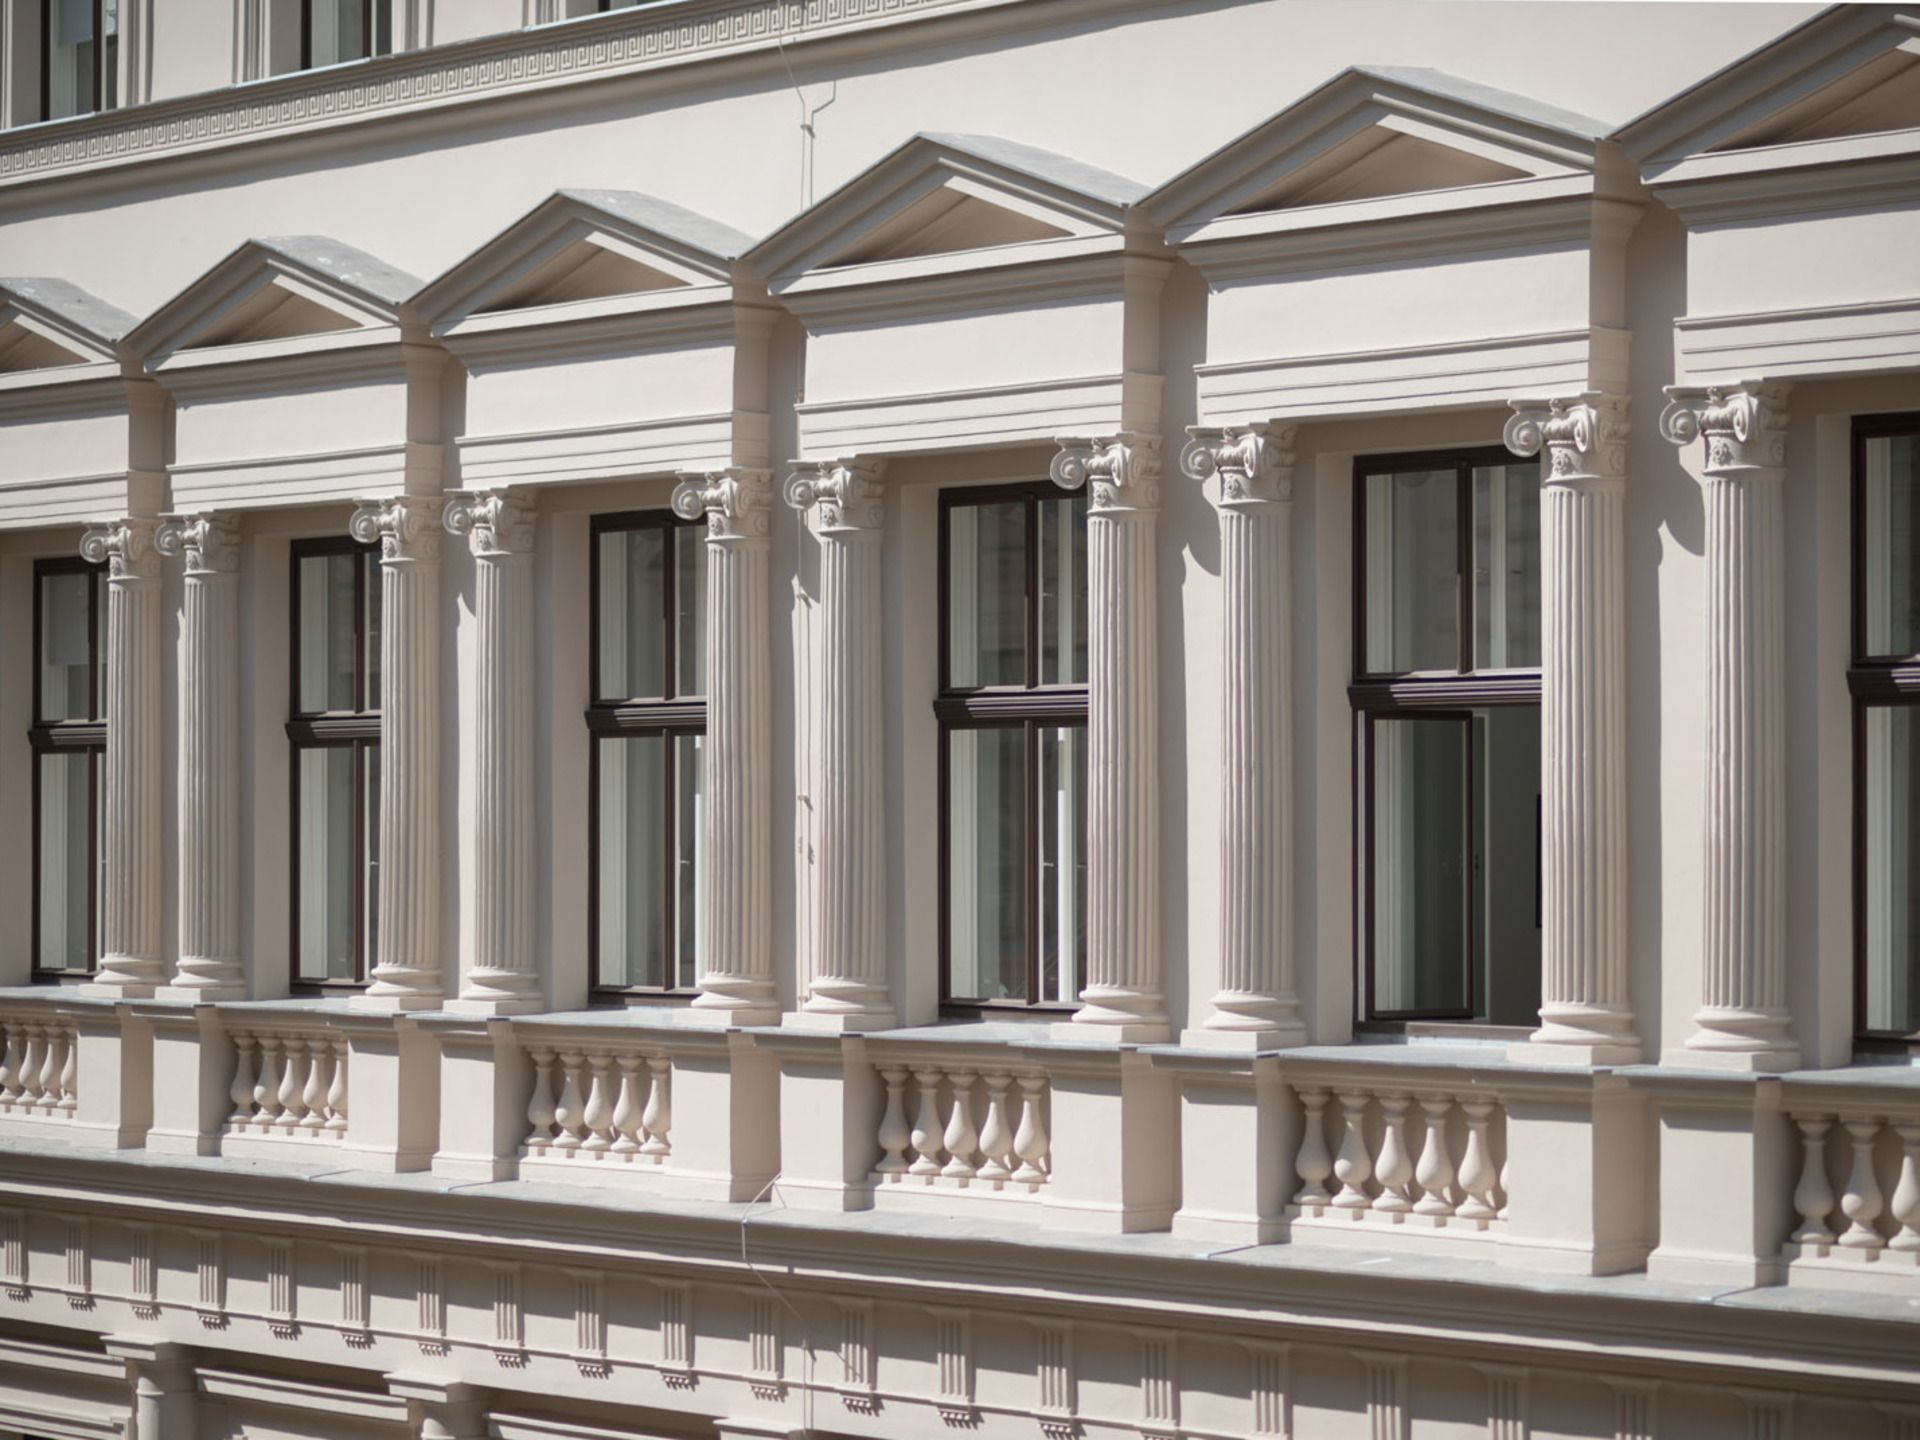 Palais Weihburggasse 30, 1010 Vienna - A modern take on a classic property